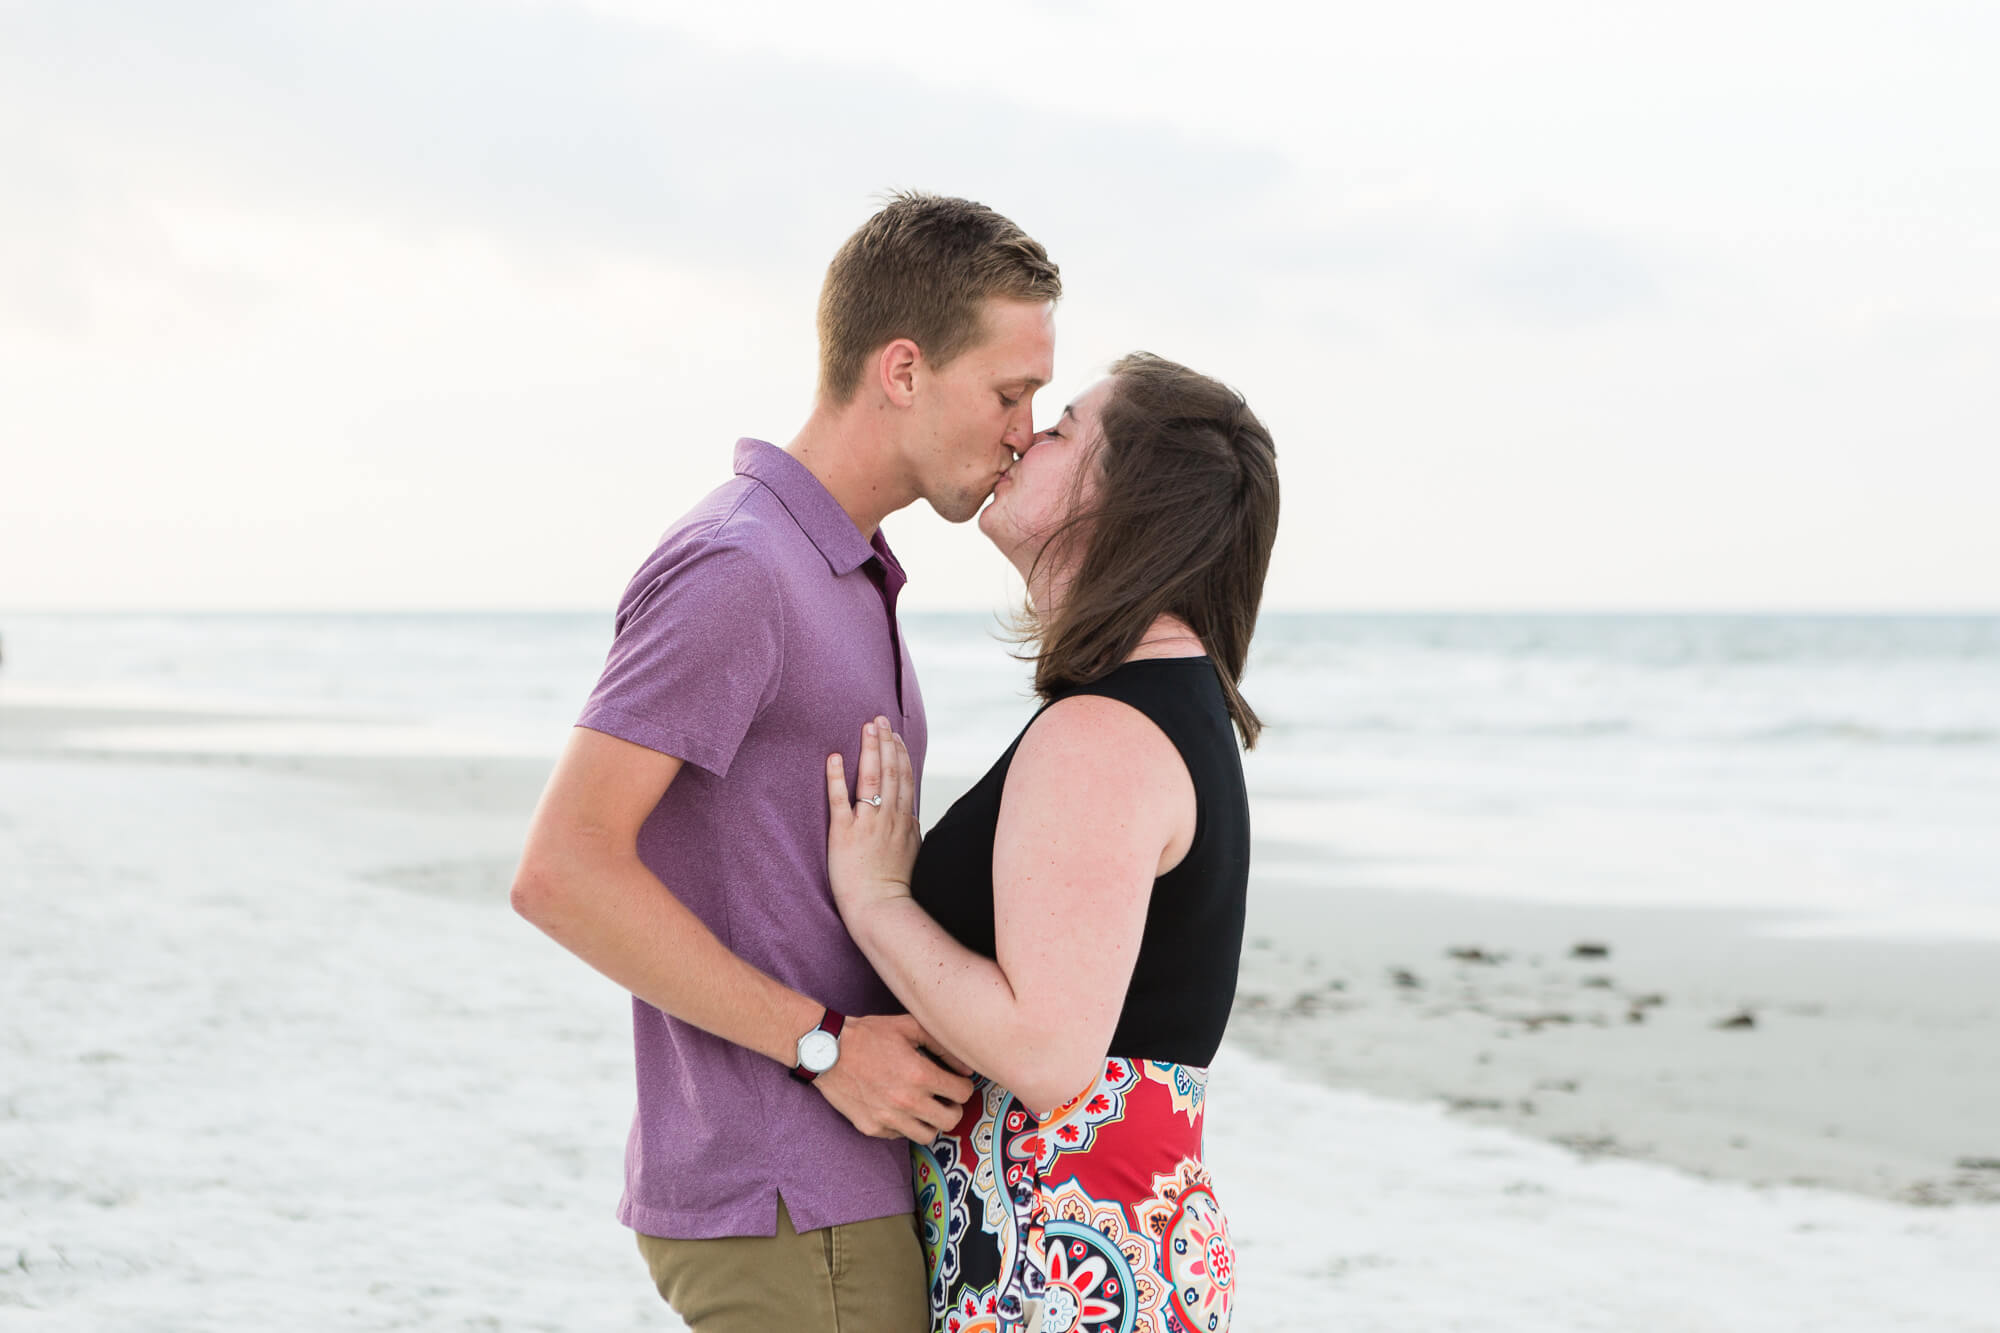 Joe proposing to Emily on Florida's New Smyrna Beach